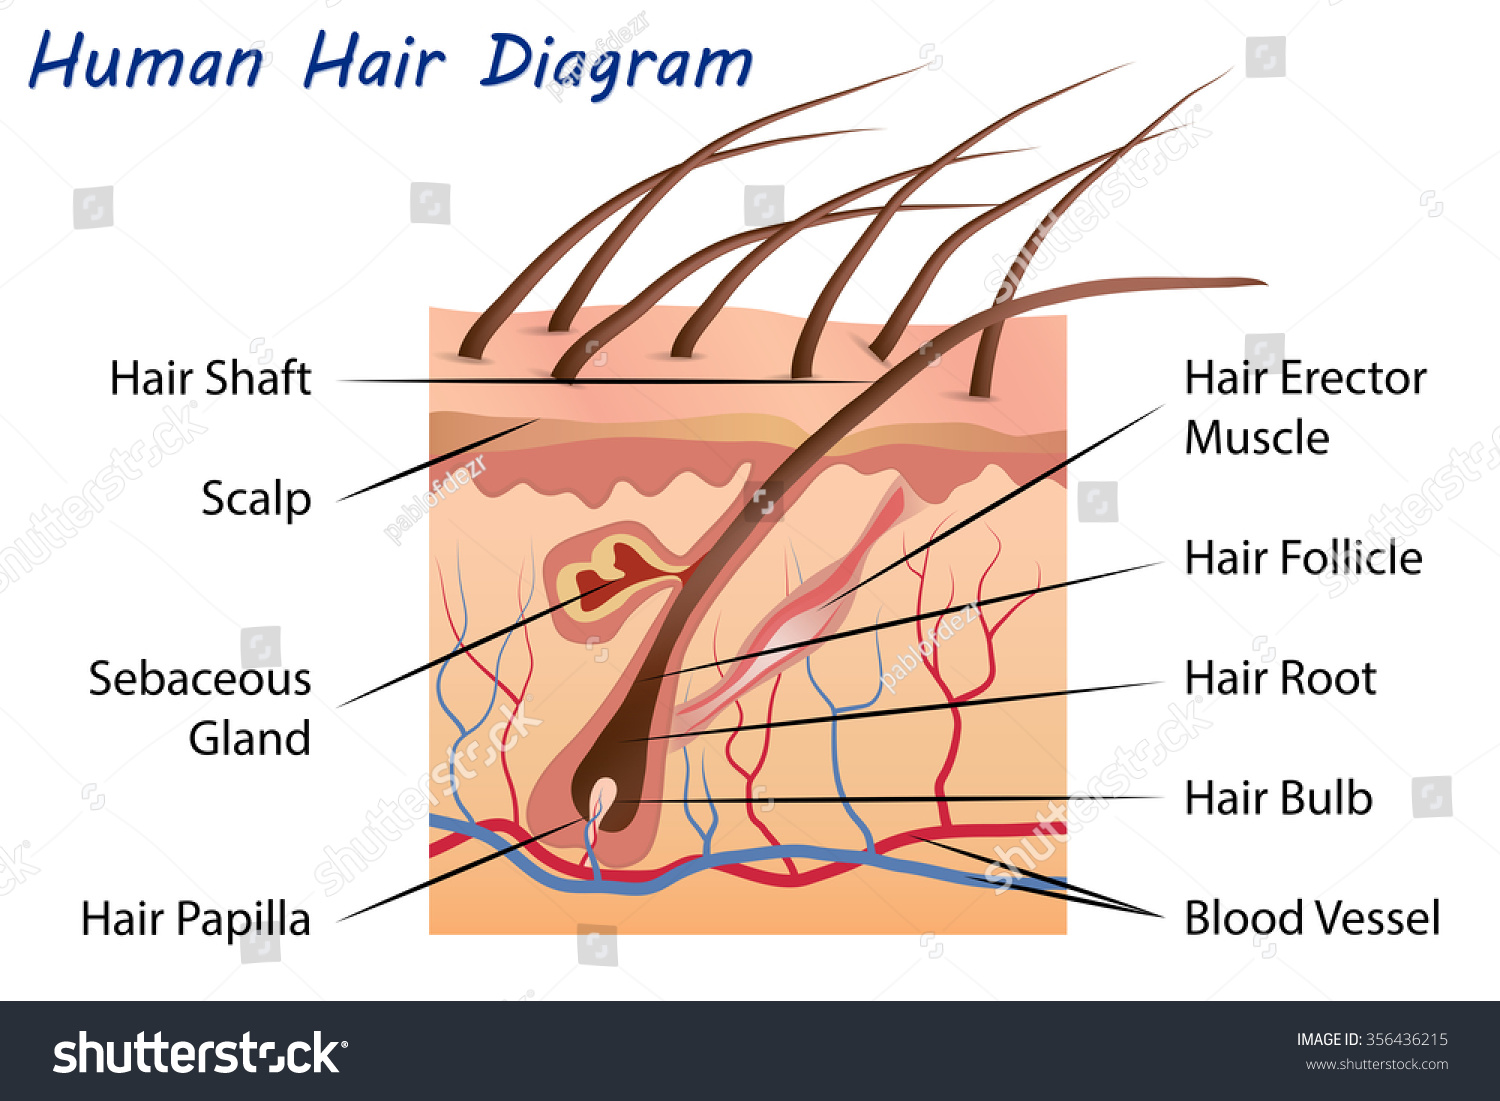 Human Hair Diagram Stock Vector 356436215